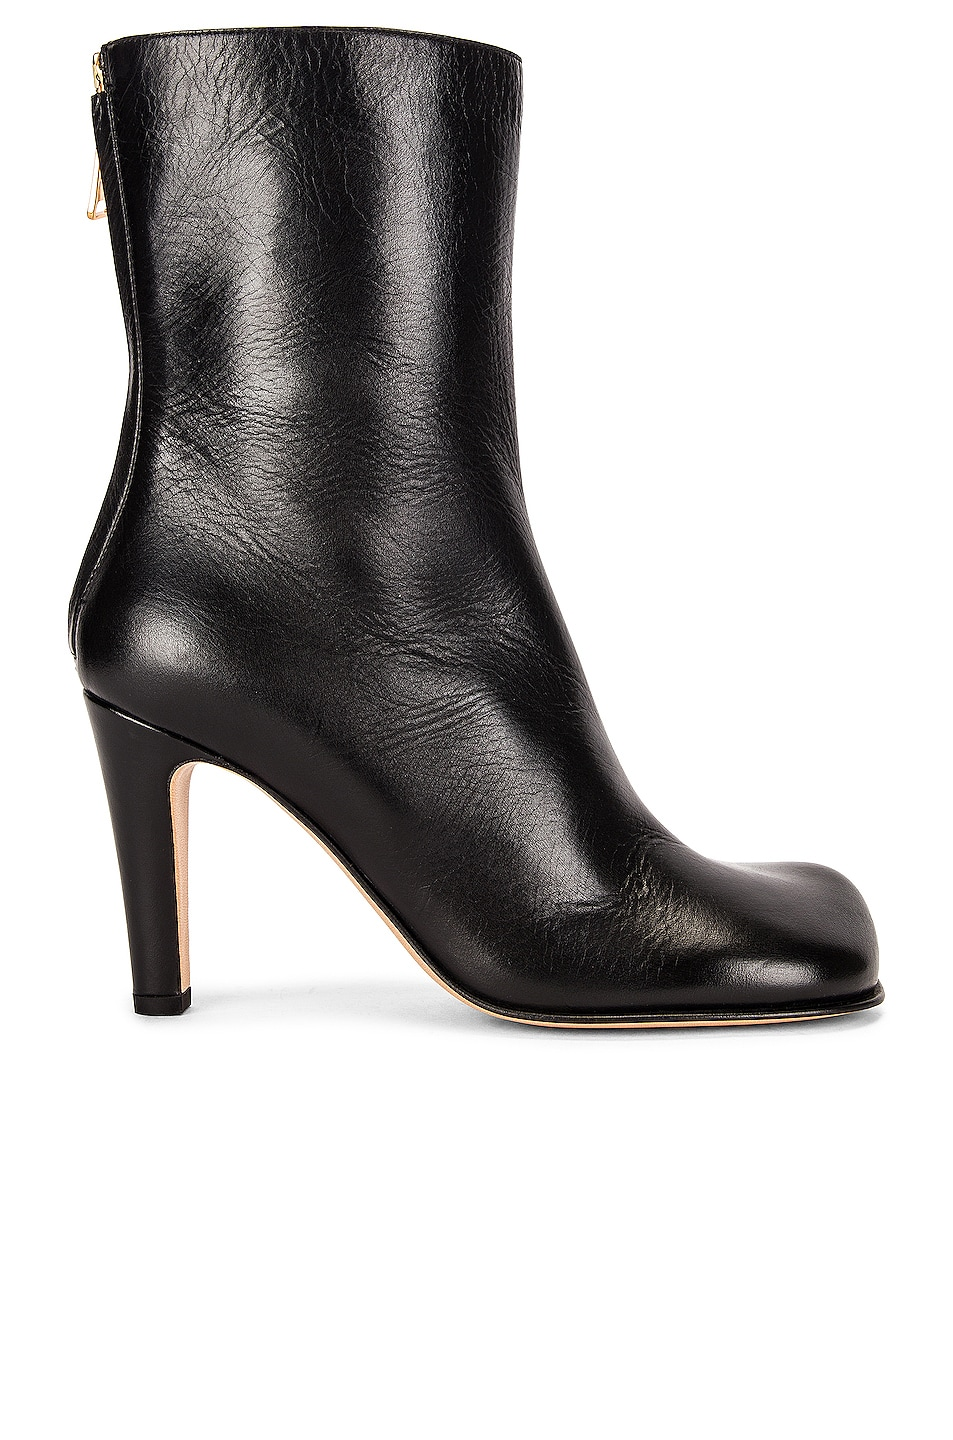 Image 1 of Bottega Veneta Round Toe Boots in Black